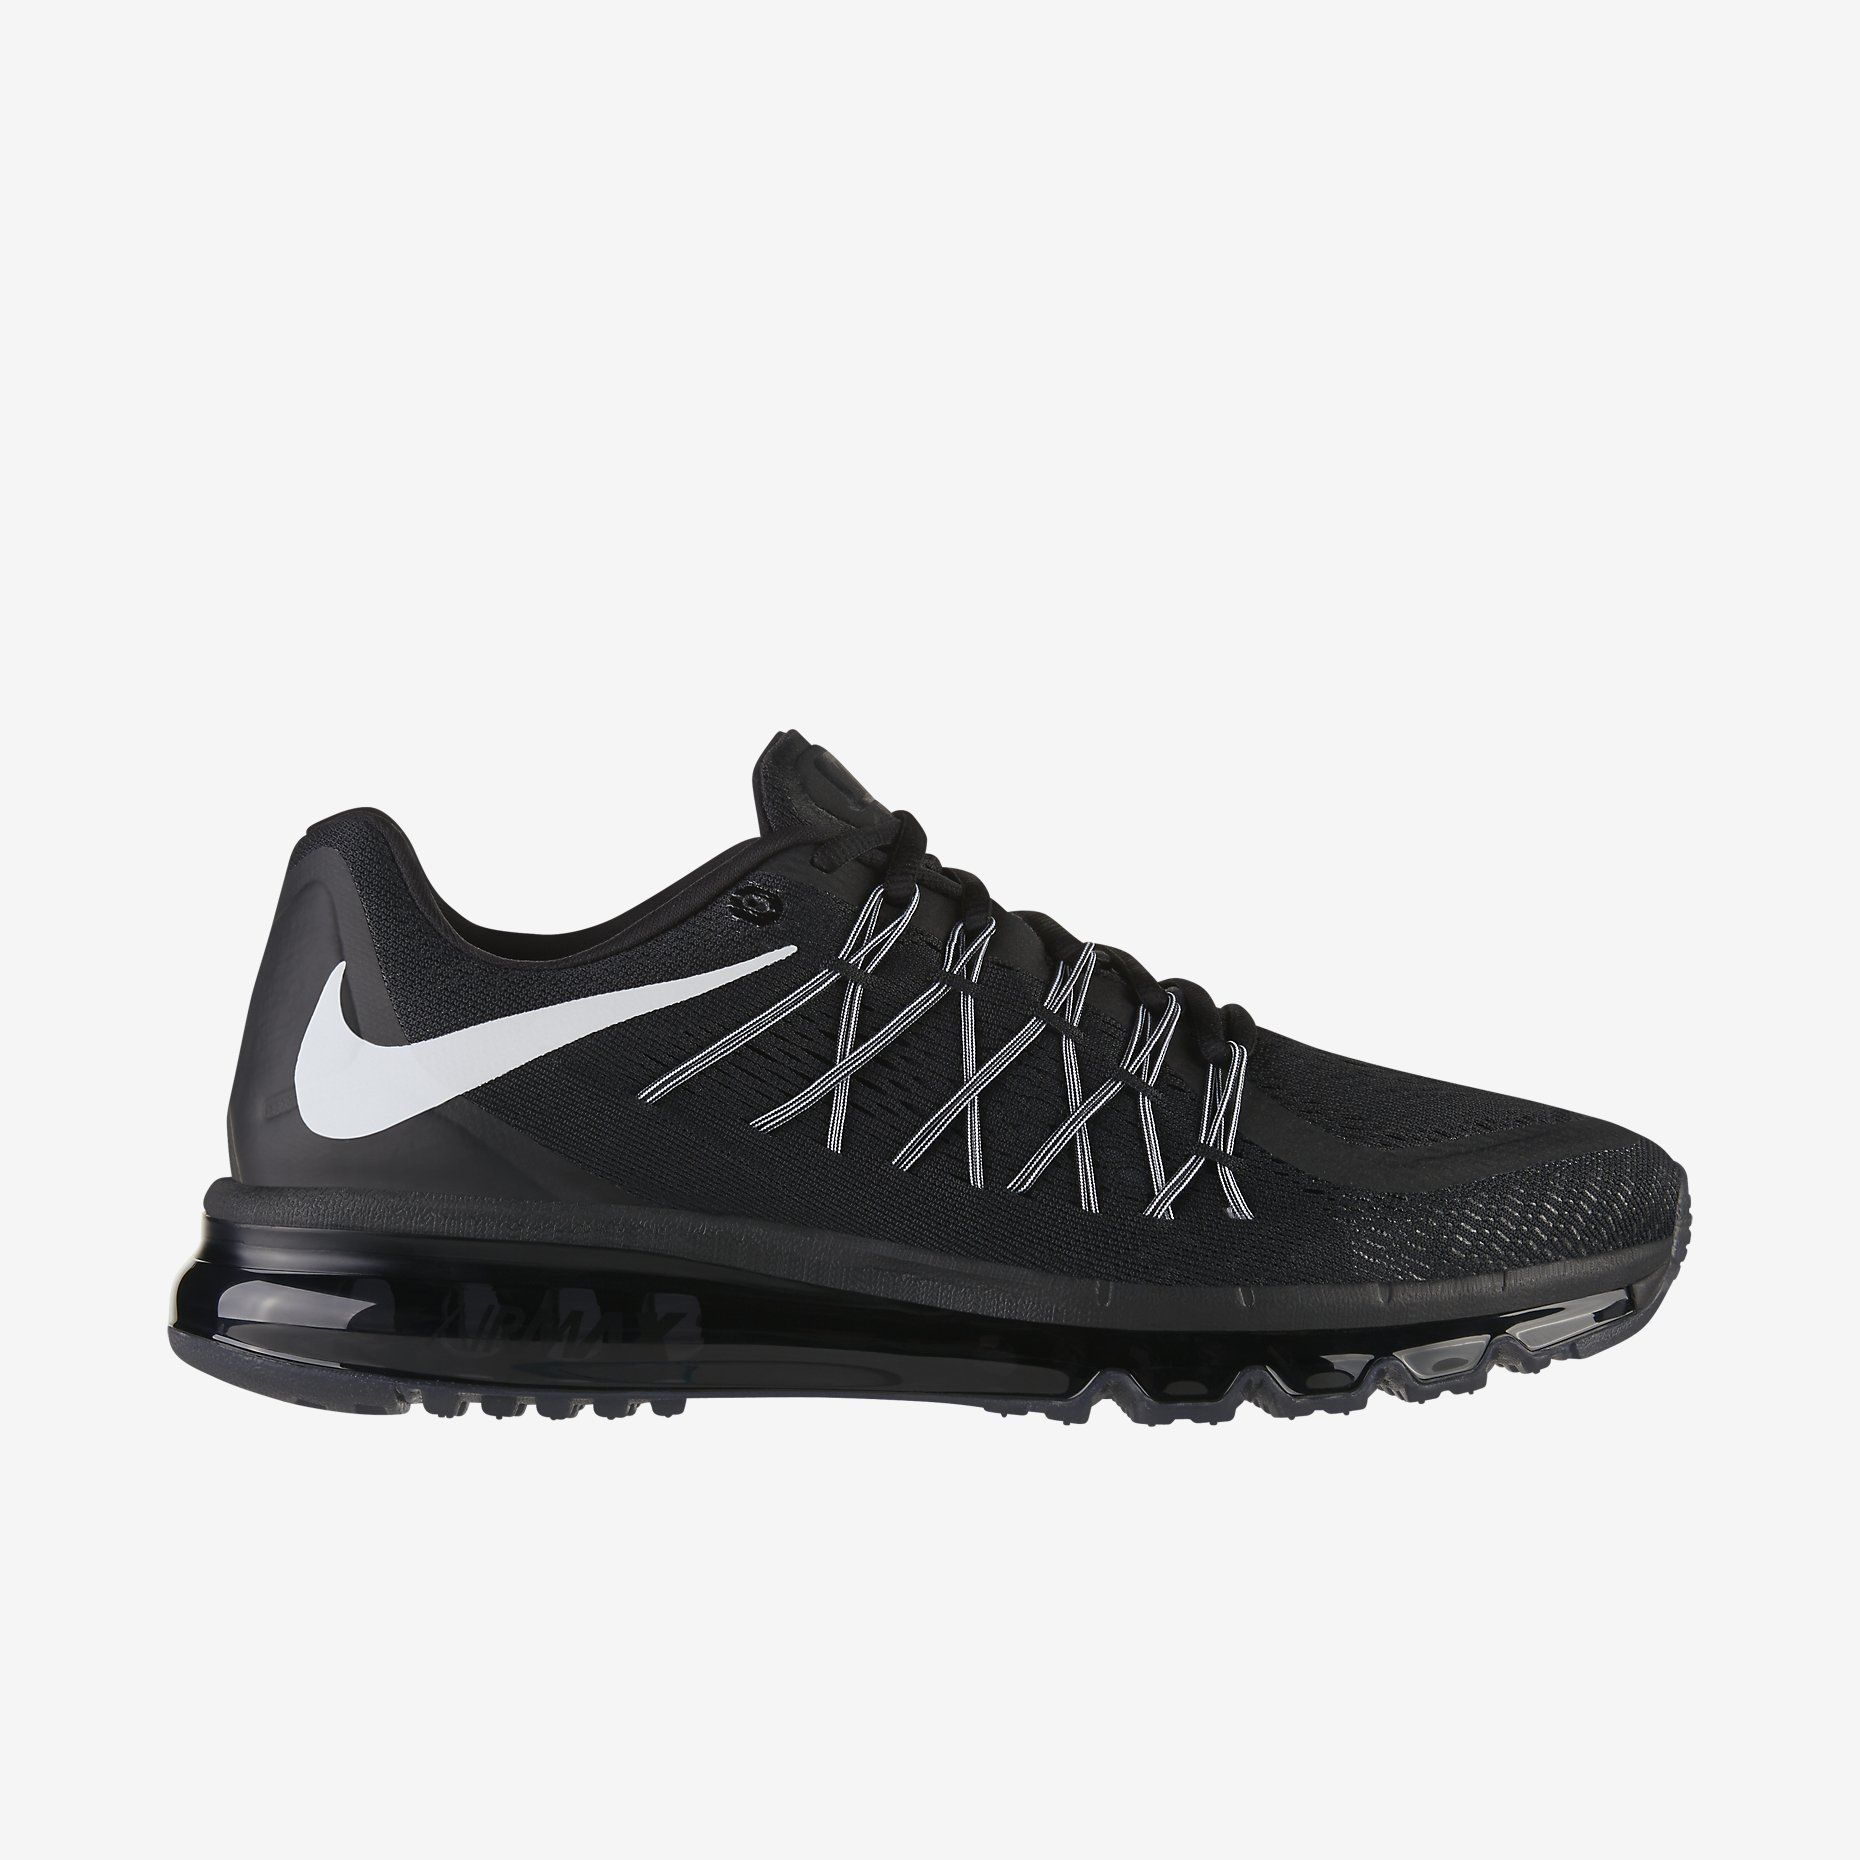 quality design a0156 78052 Nike Air Max 2015 Mens Running Shoe. Nike Store Tenis Masculino, Moda,  Zapatillas